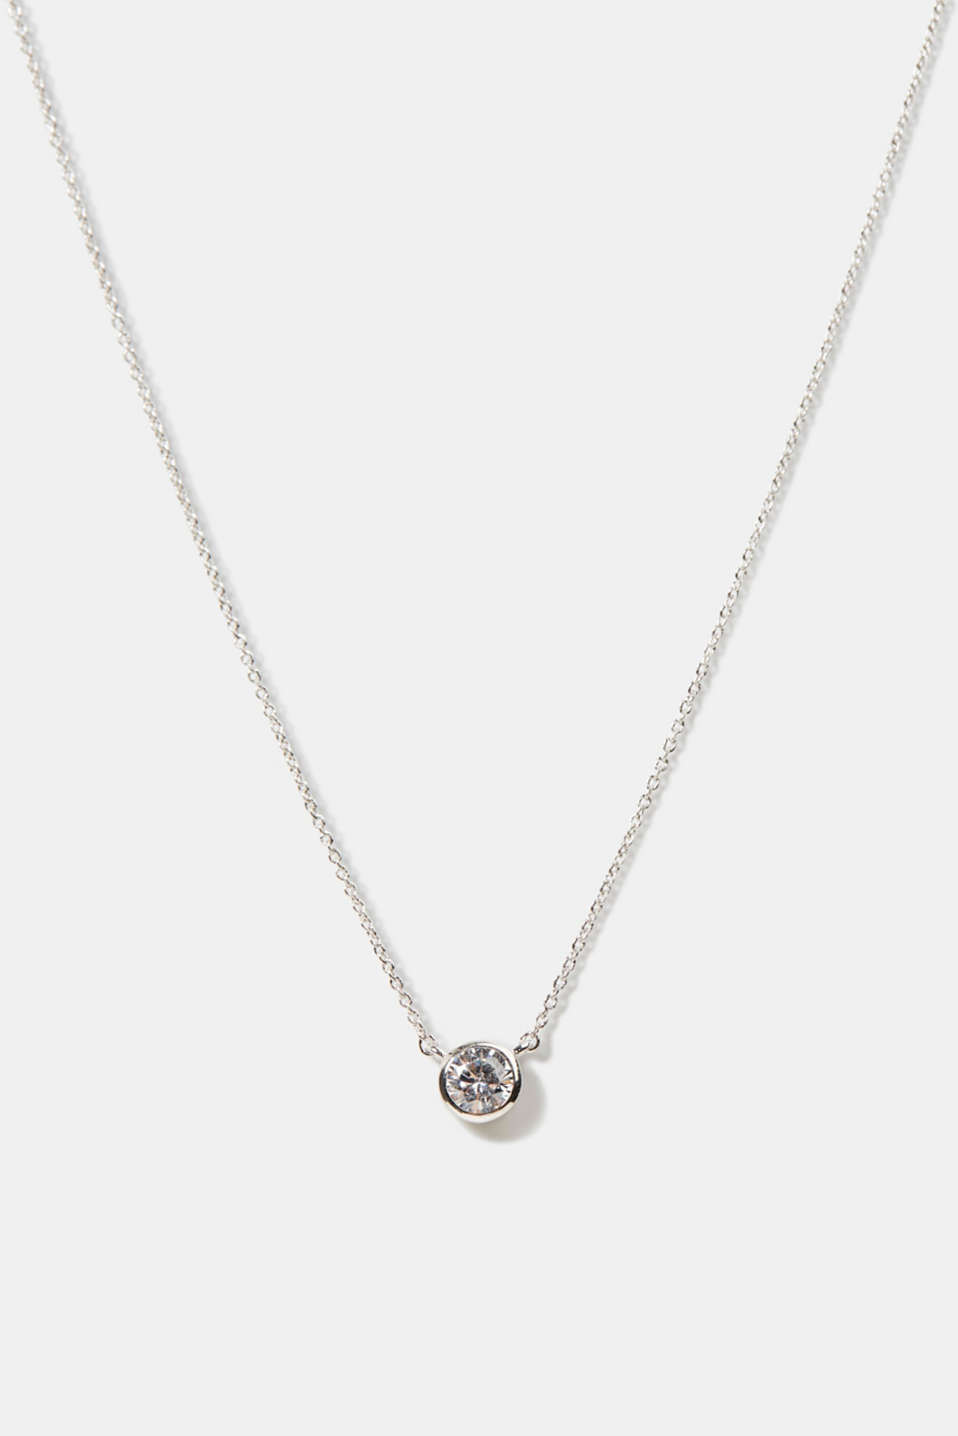 Esprit - Necklace with zirconia pendant, sterling silver